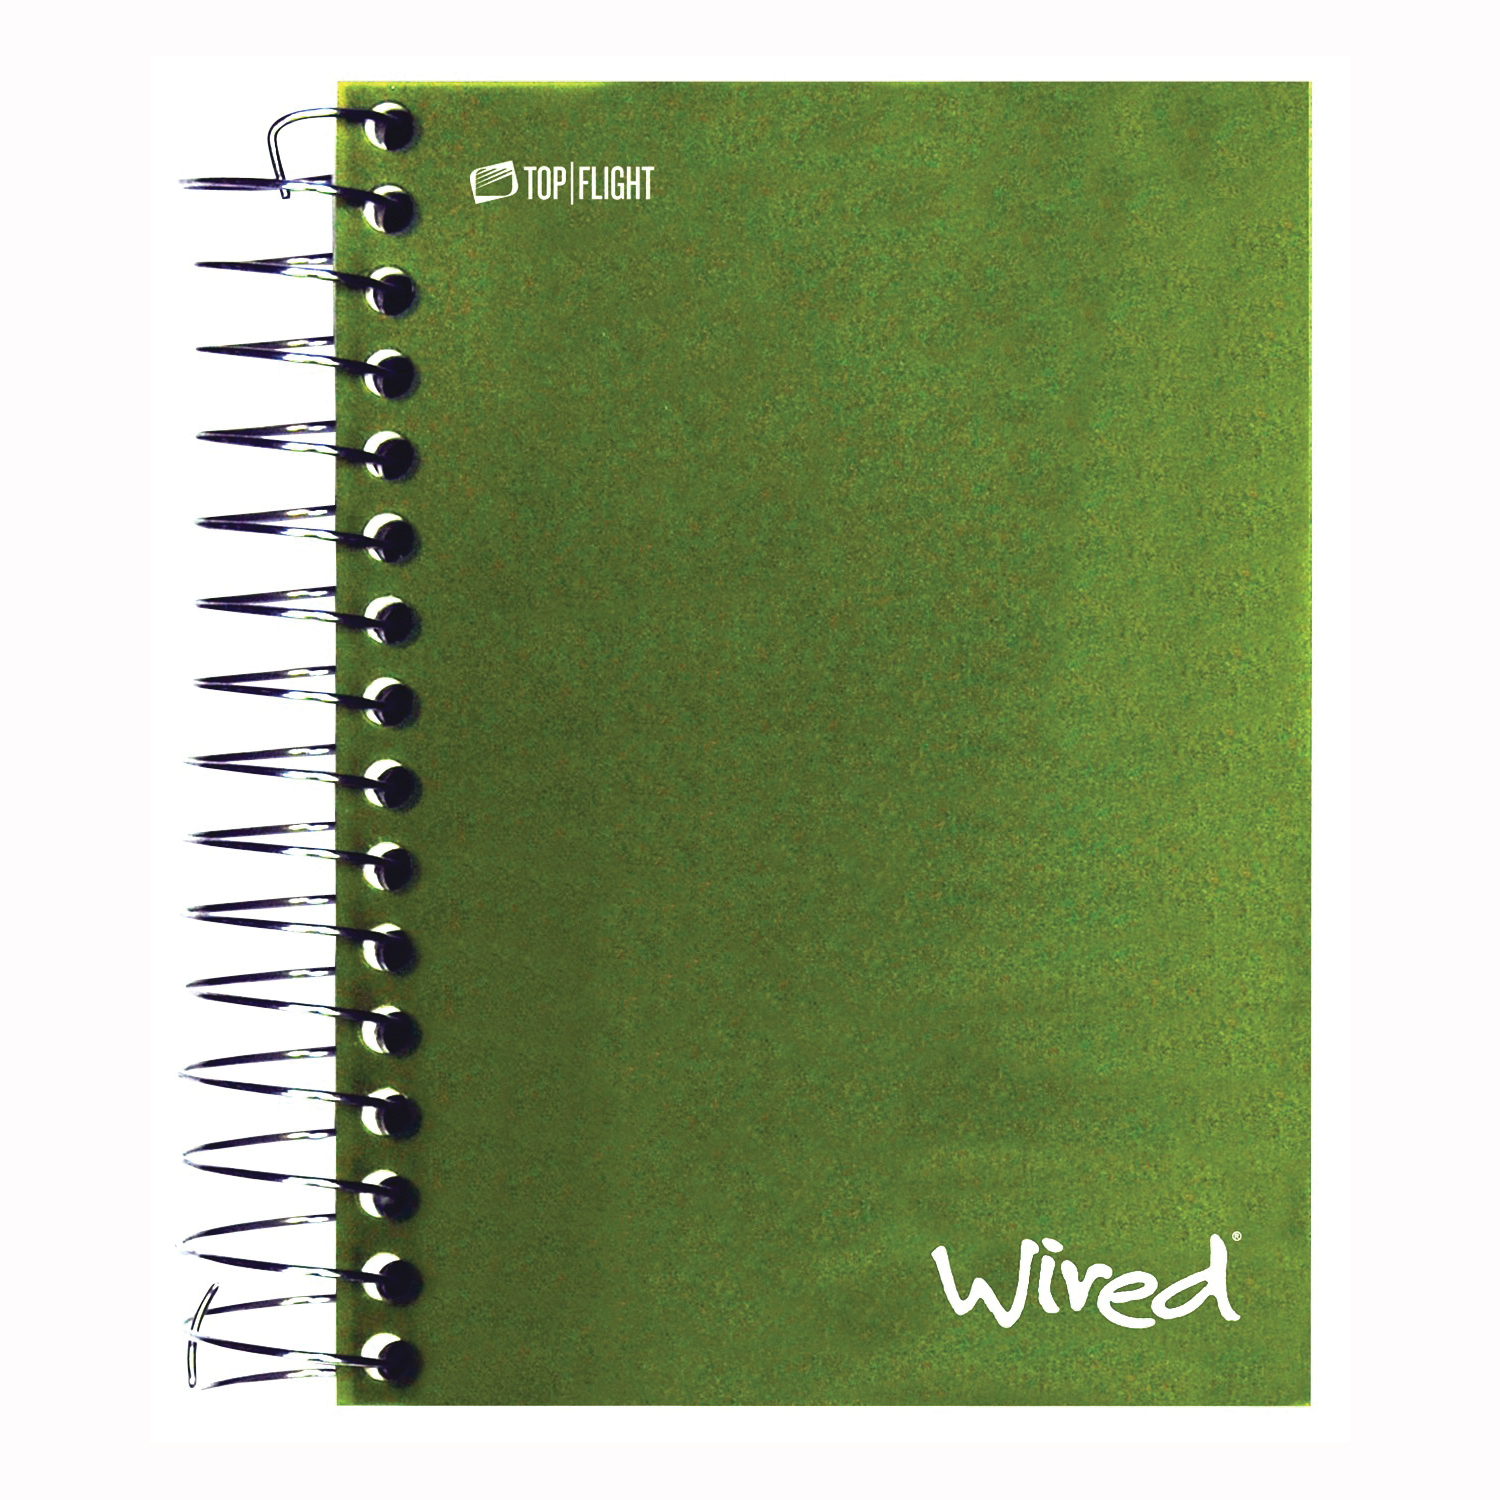 Picture of TOP FLIGHT 43001 Series 4511478 Narrow Rule Notebook, Micro-Perforated Sheet, 180-Sheet, Wirebound Binding